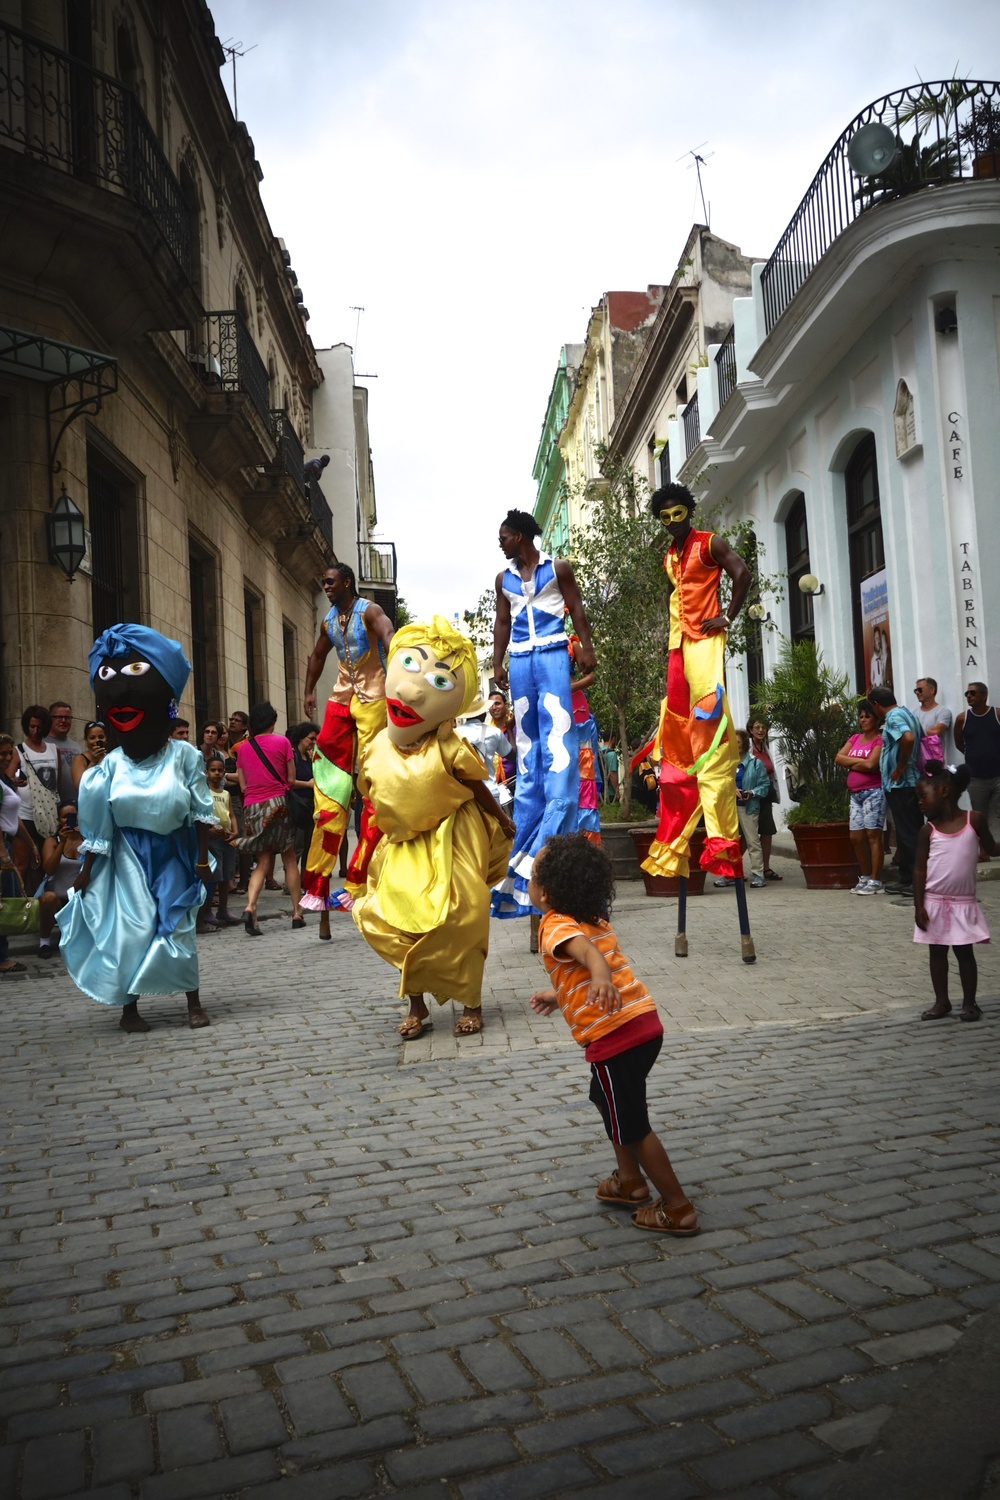 Neighborhood children come out to dance alongside an afternoon street performance.